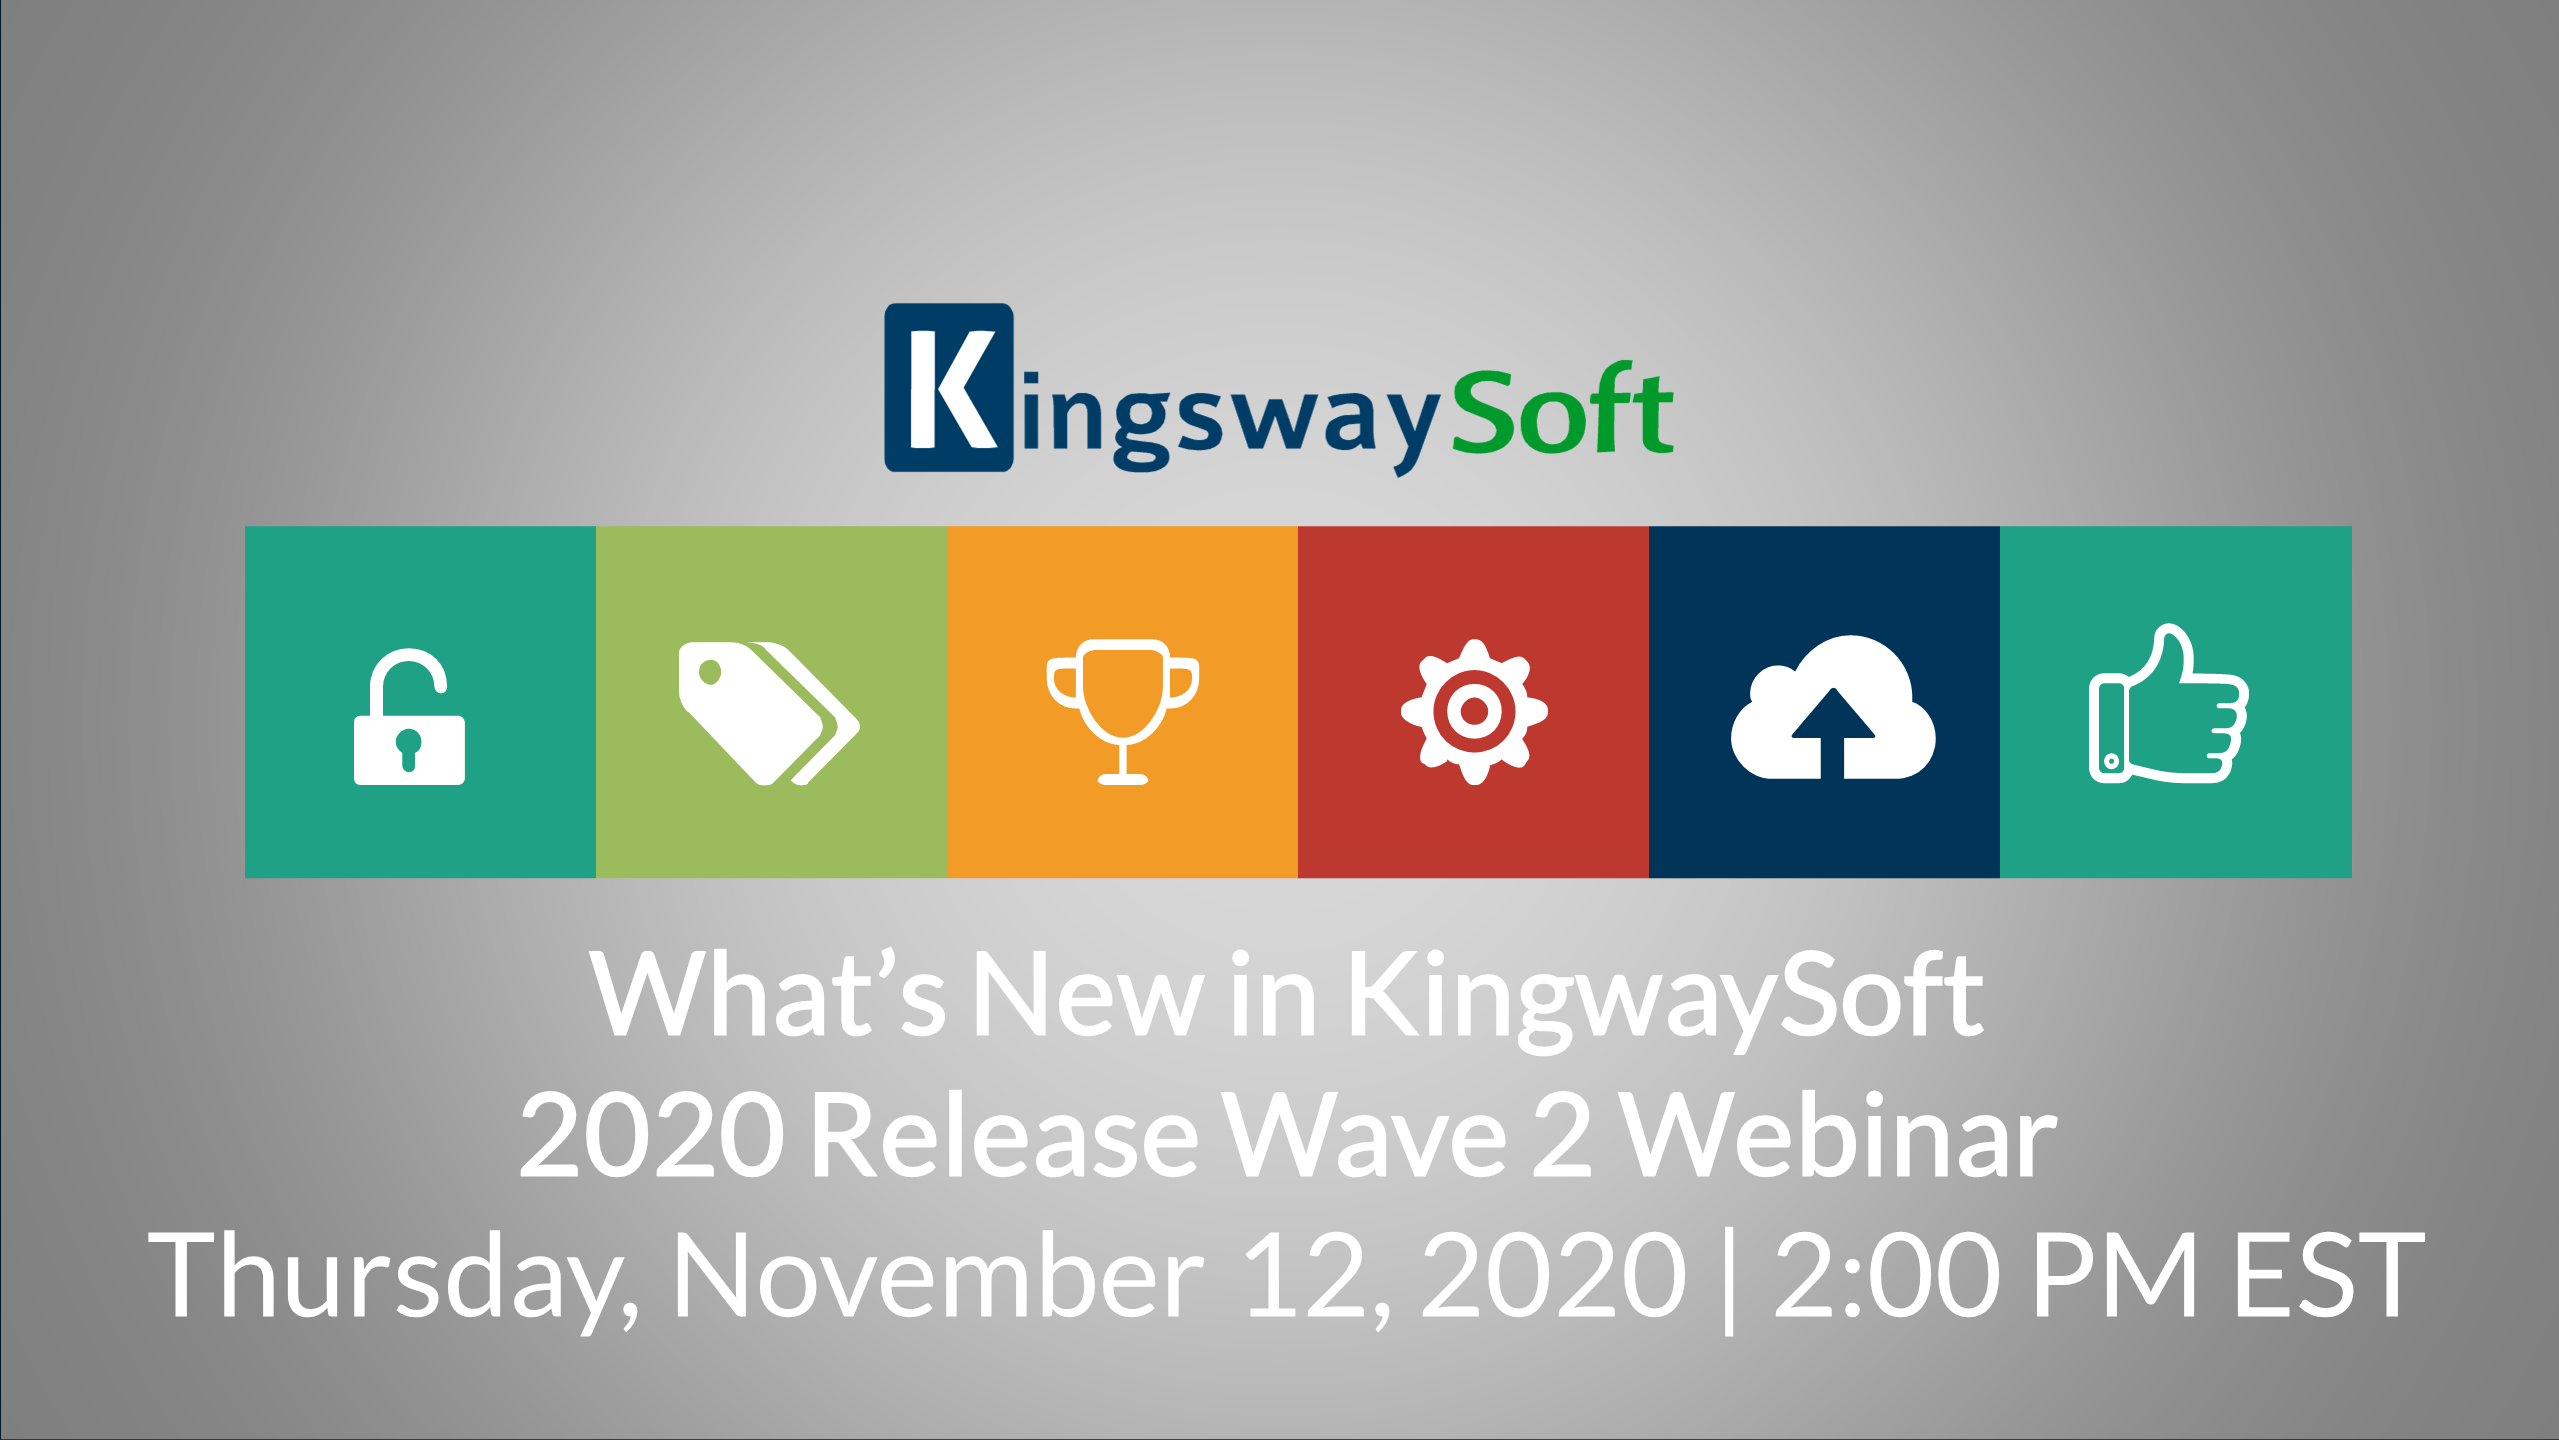 What's New with KingswaySoft 2020 Release Wave 2 Webinar